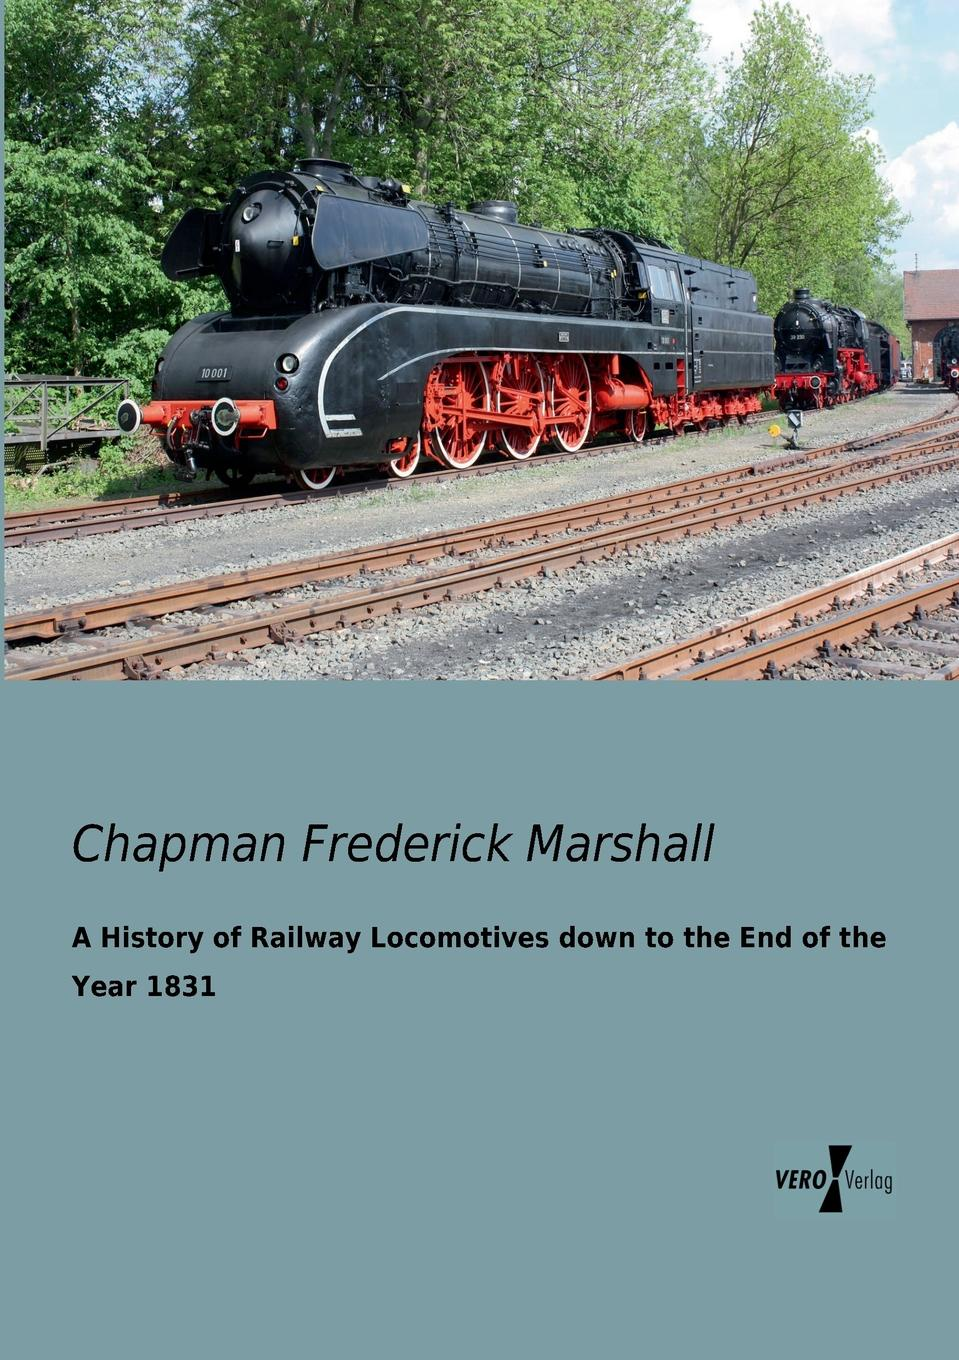 Chapman Frederick Marshall A History of Railway Locomotives down to the End of the Year 1831